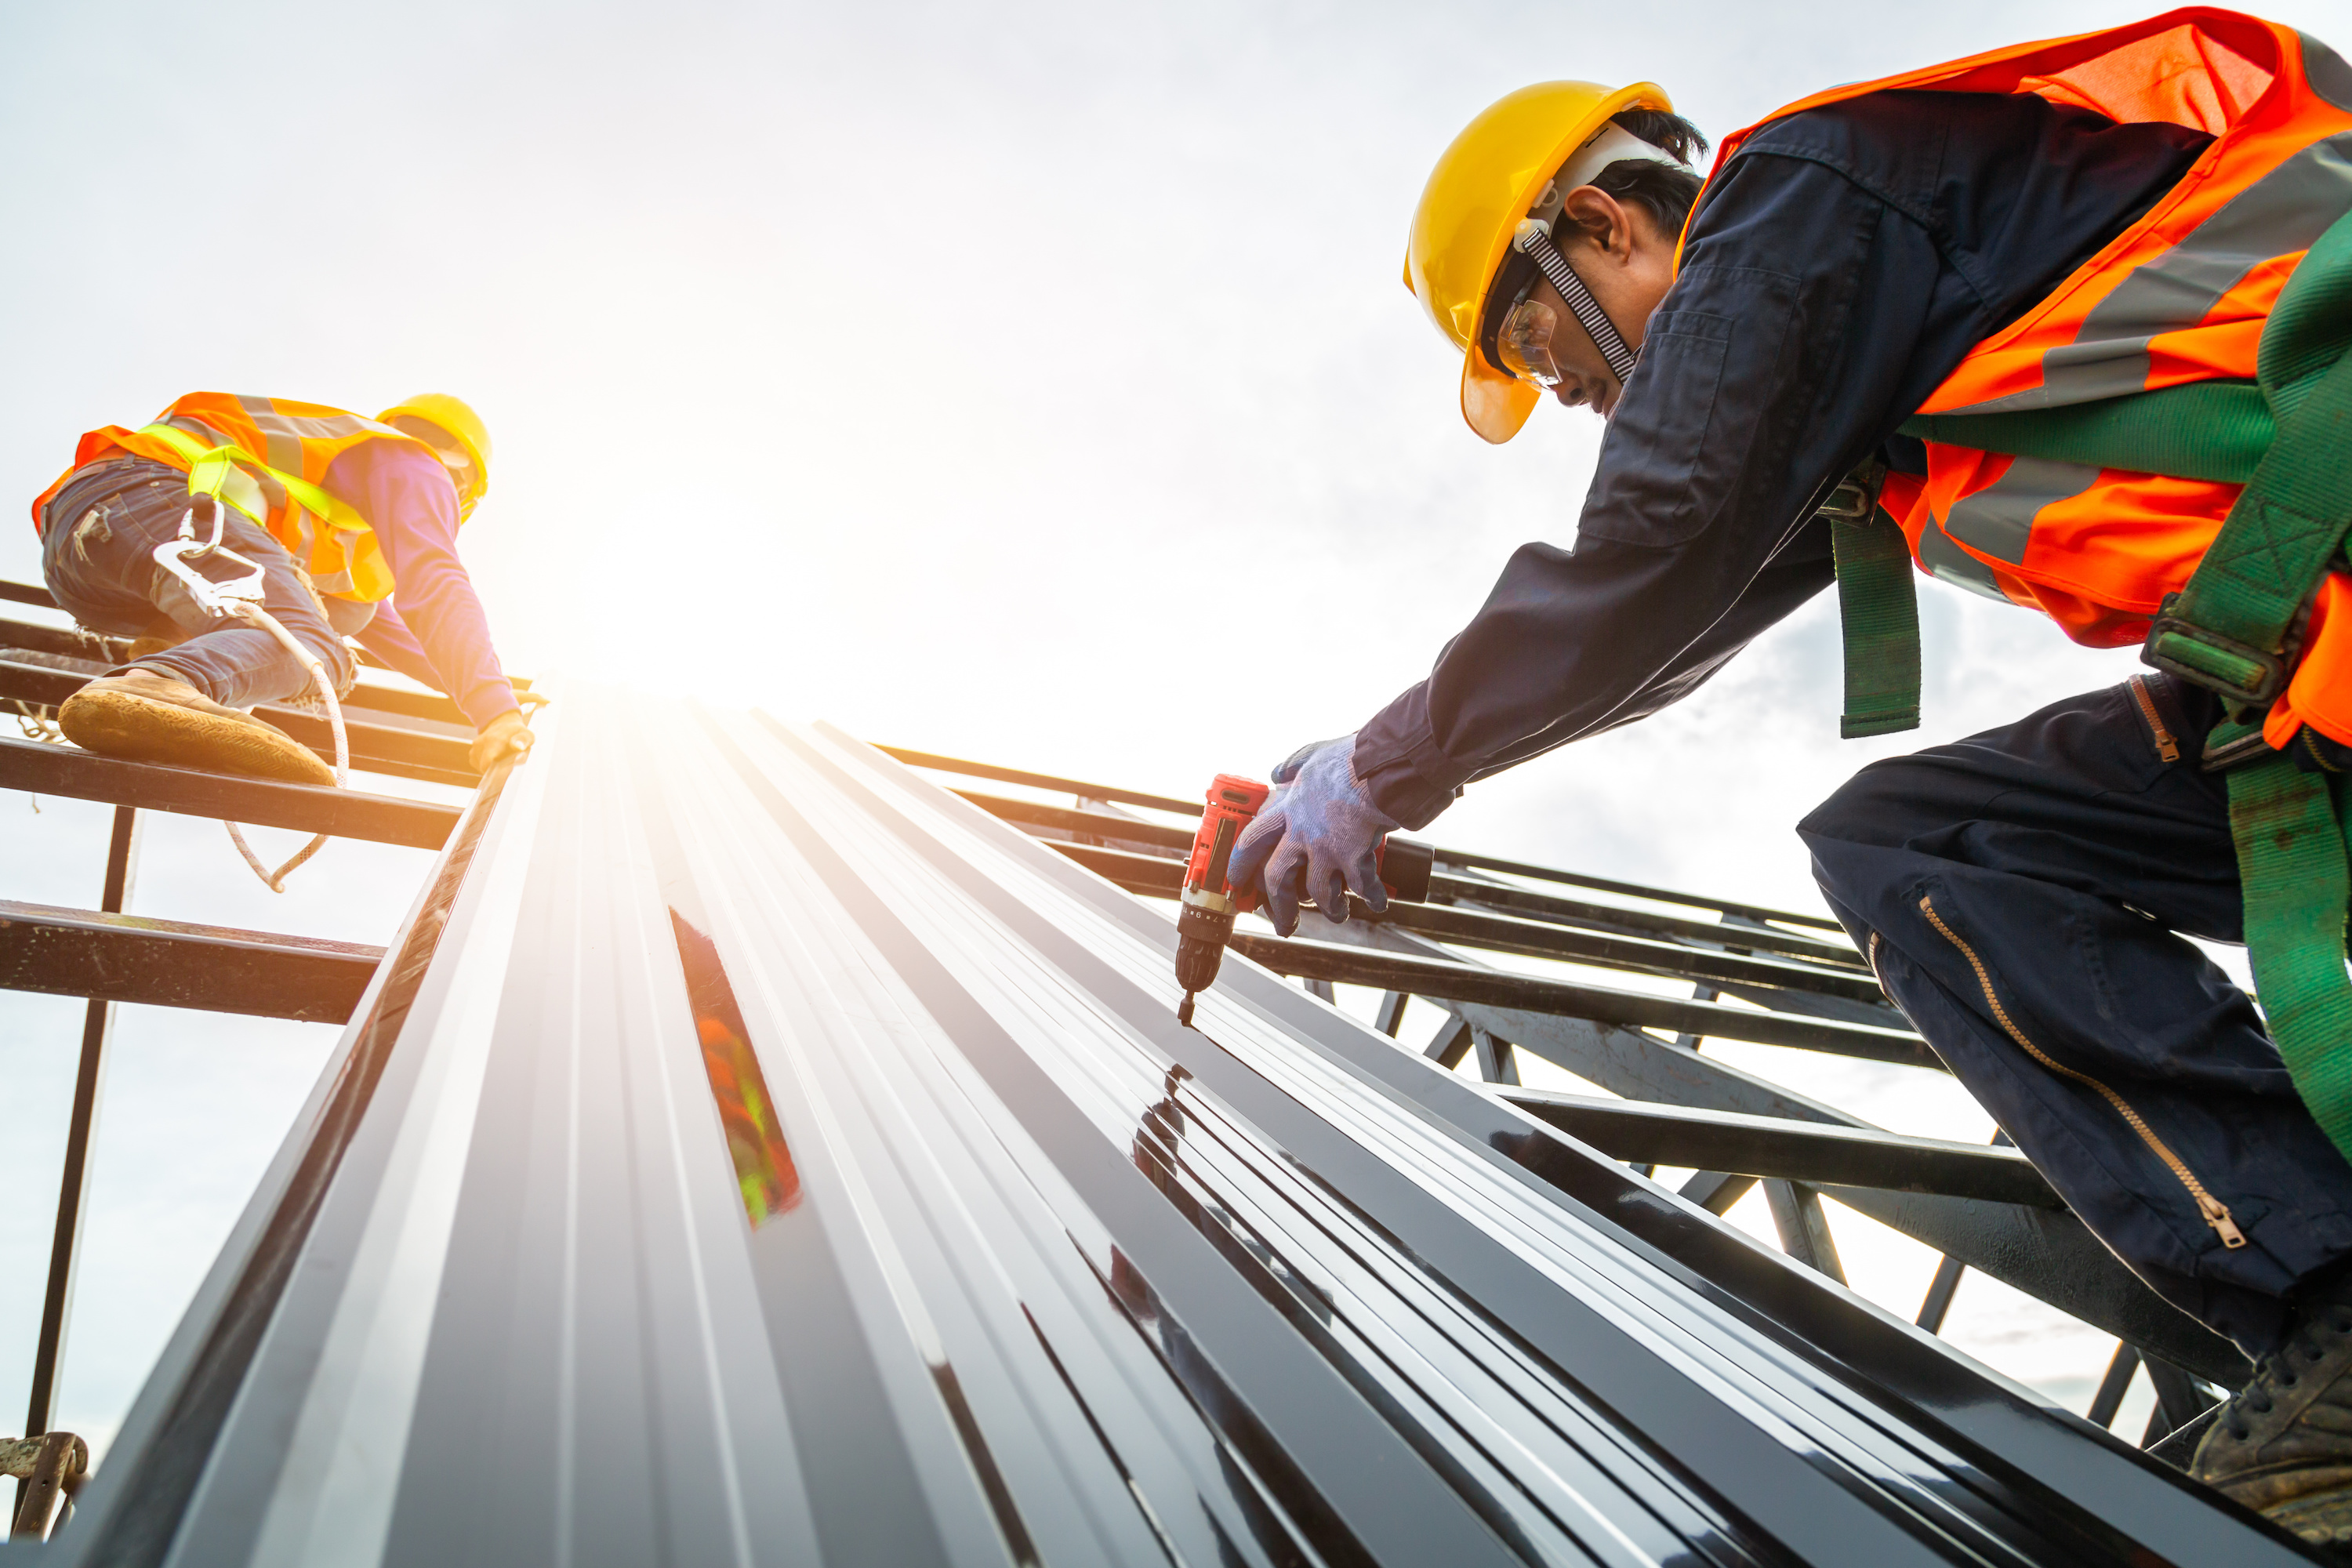 Construction workers installing roof material